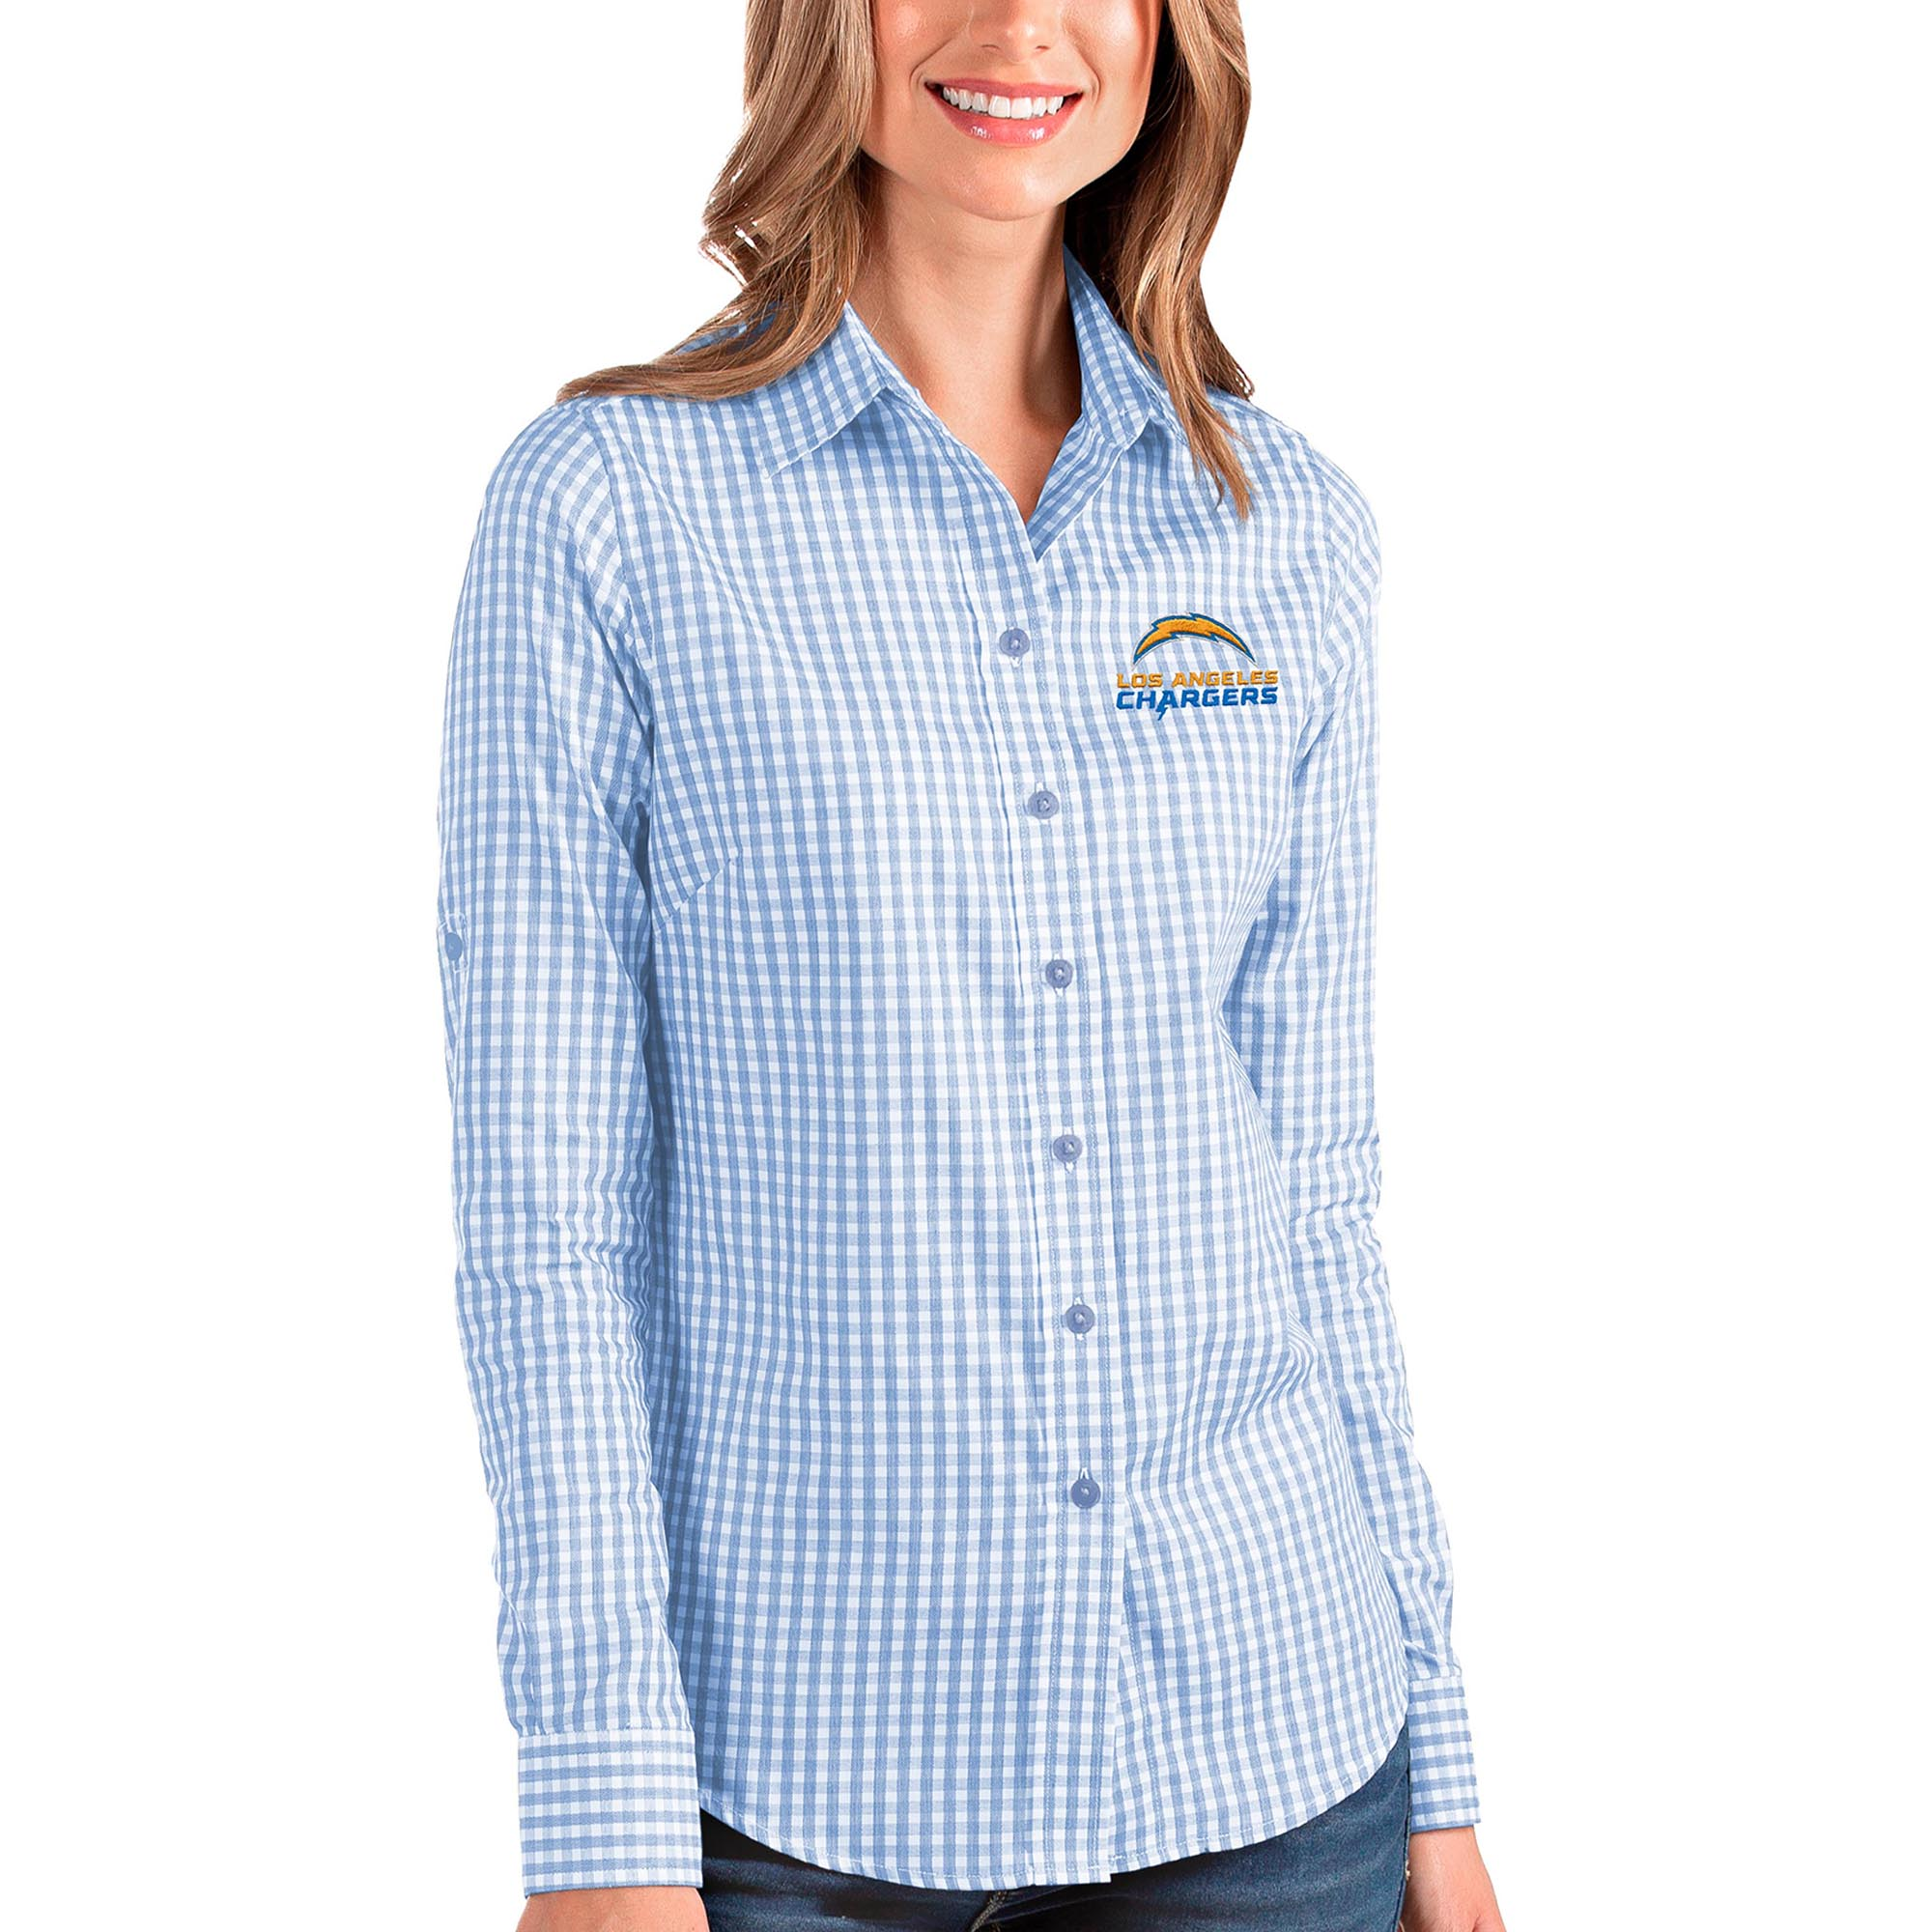 Los Angeles Chargers Antigua Women's Structure Button-Up Long Sleeve Shirt - Blue